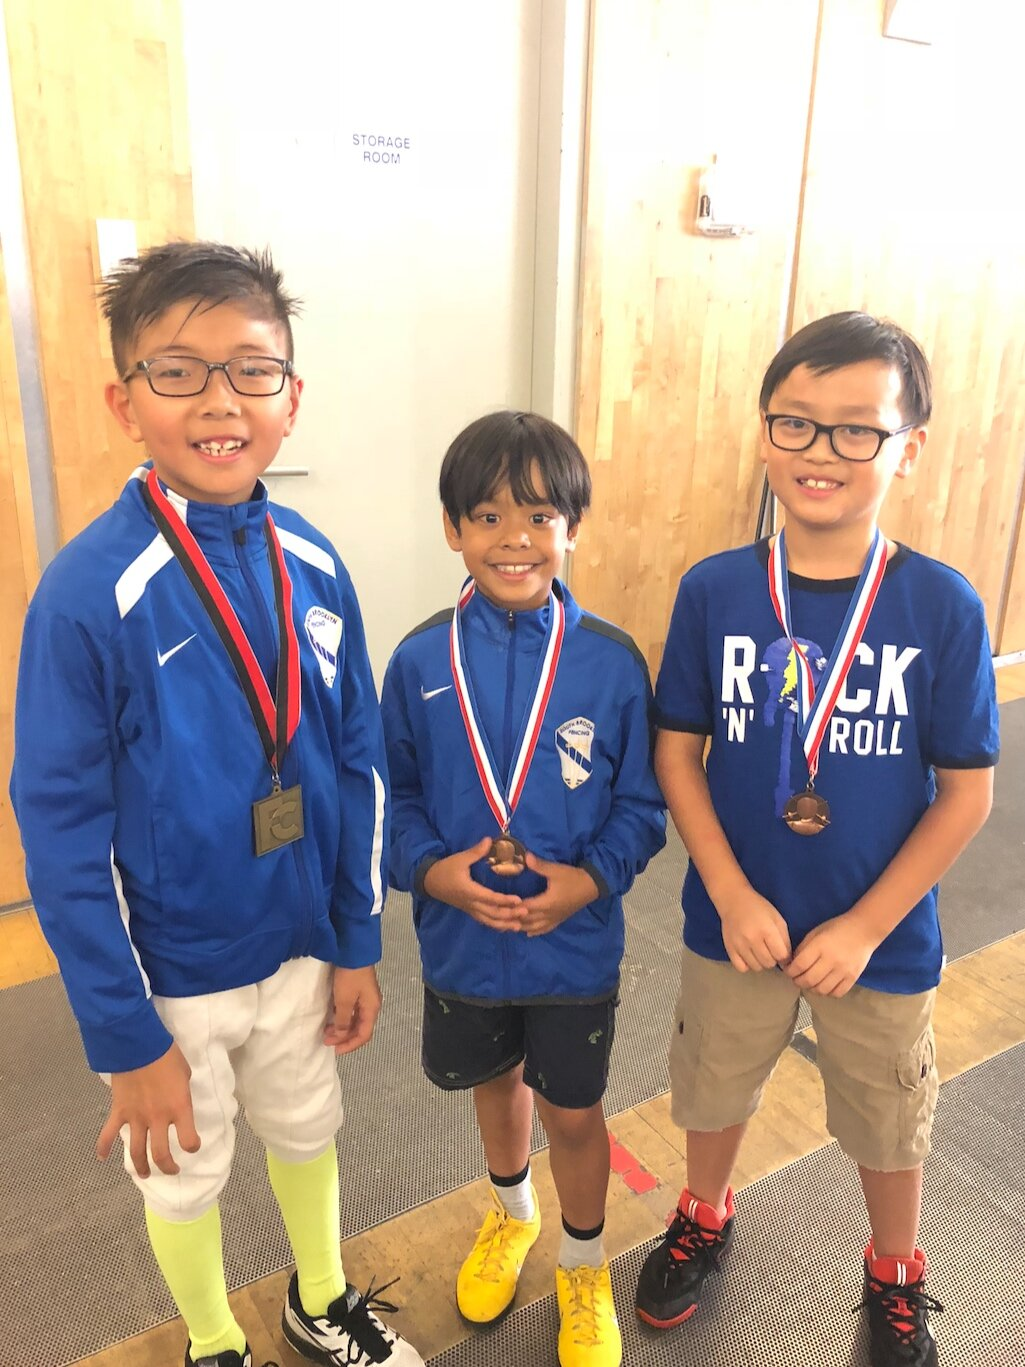 FC Youth Tournament   Ethan Mo 1st place Y8 mixed foil Ryan Liu 6th place Y8 mixed foil Phineas Kuo 8th place Y8 mixed foil Valentina Visco 9th place Y8 mixed foil Sophie Cascone 10th place Y8 mixed foil  September 22nd 2019